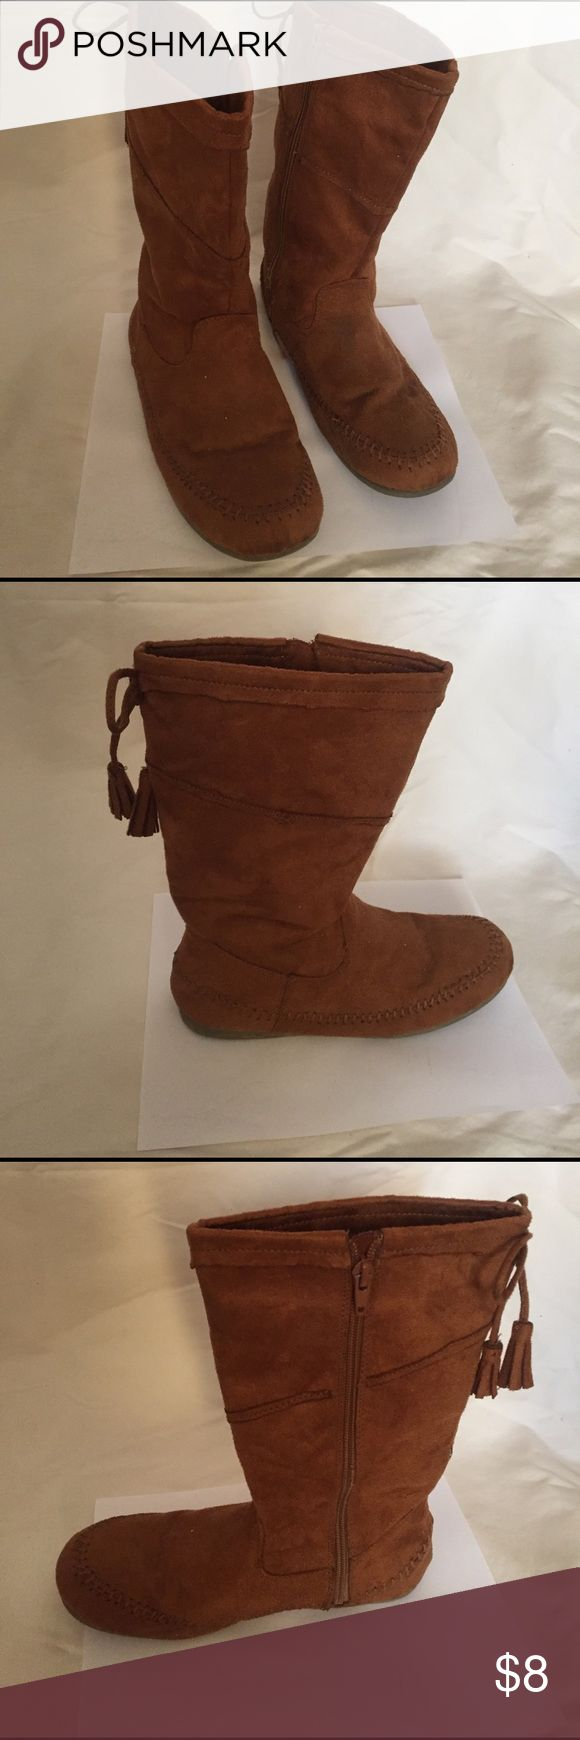 Mudd brown boots Mudd brown flat boots with tassel size 5 (used) Shoes Ankle Boots & Booties